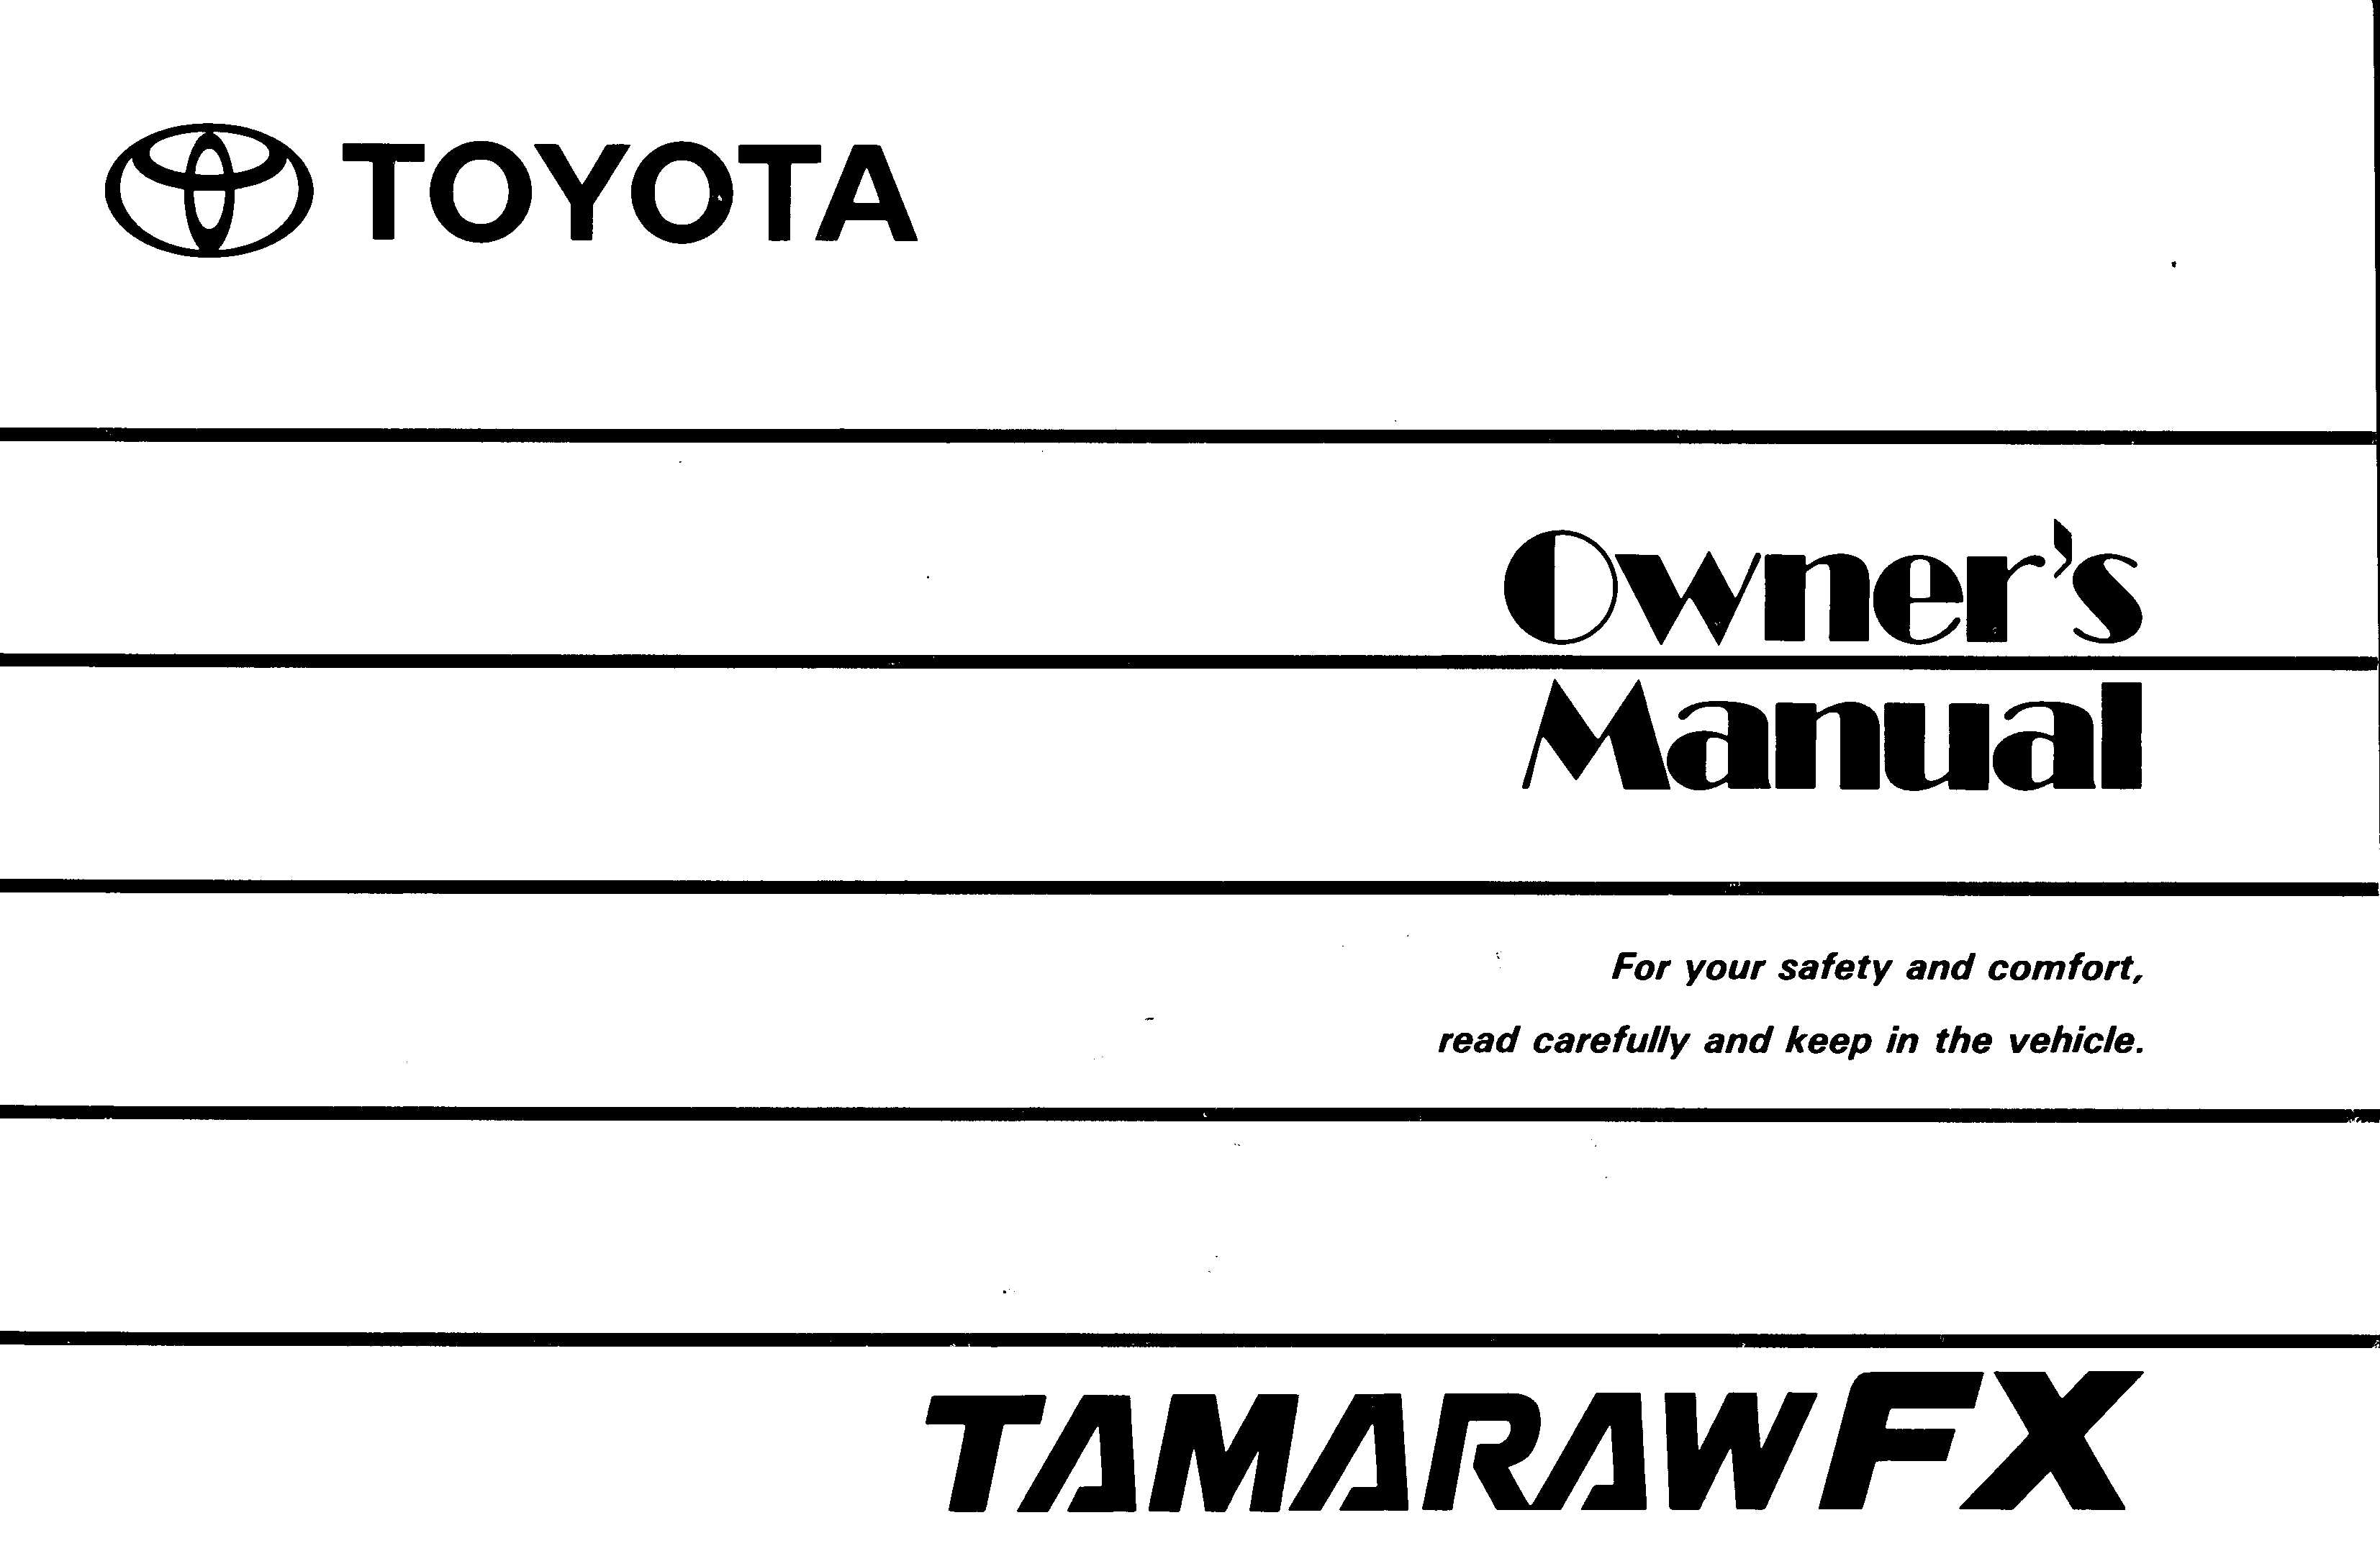 Manual Toyota 7k Wiring Diagram Kijang Efi Array Owner U0027s For Tamaraw Fx U2013 Phdm Manuals Rh Phdmmanuals Wordpress